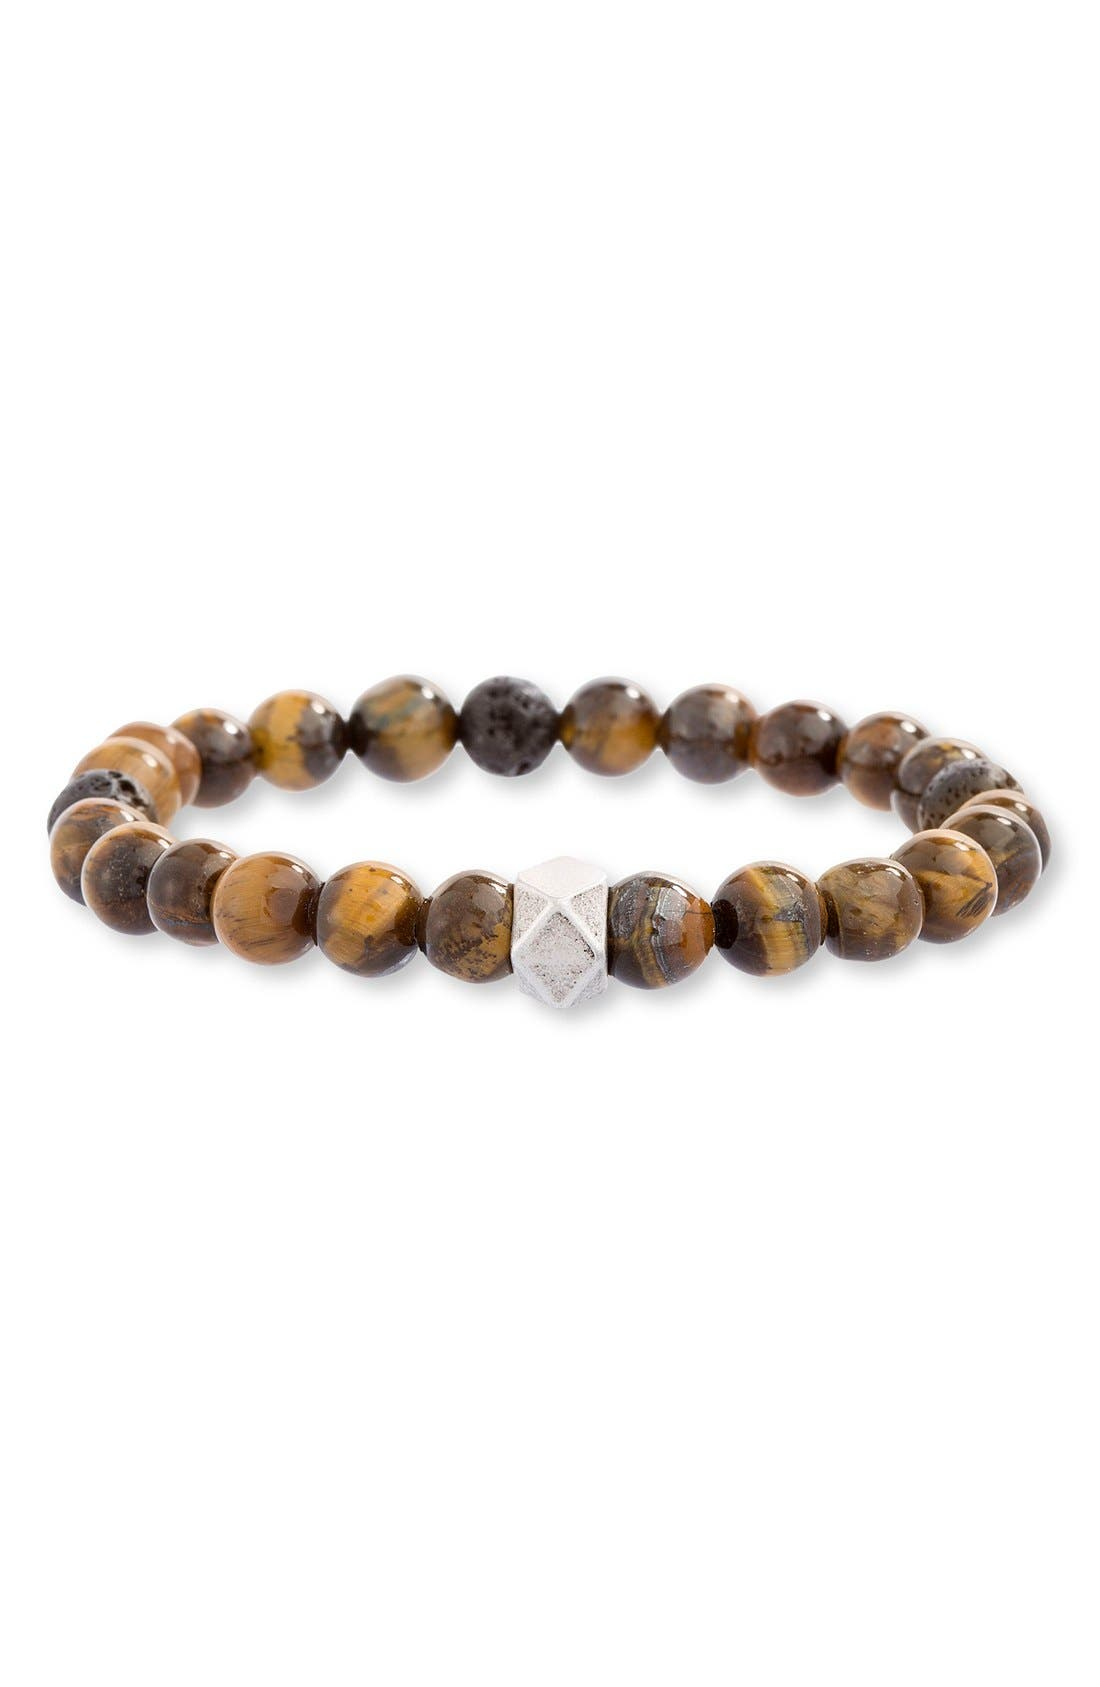 Tiger's Eye Bead Bracelet,                         Main,                         color, BROWN